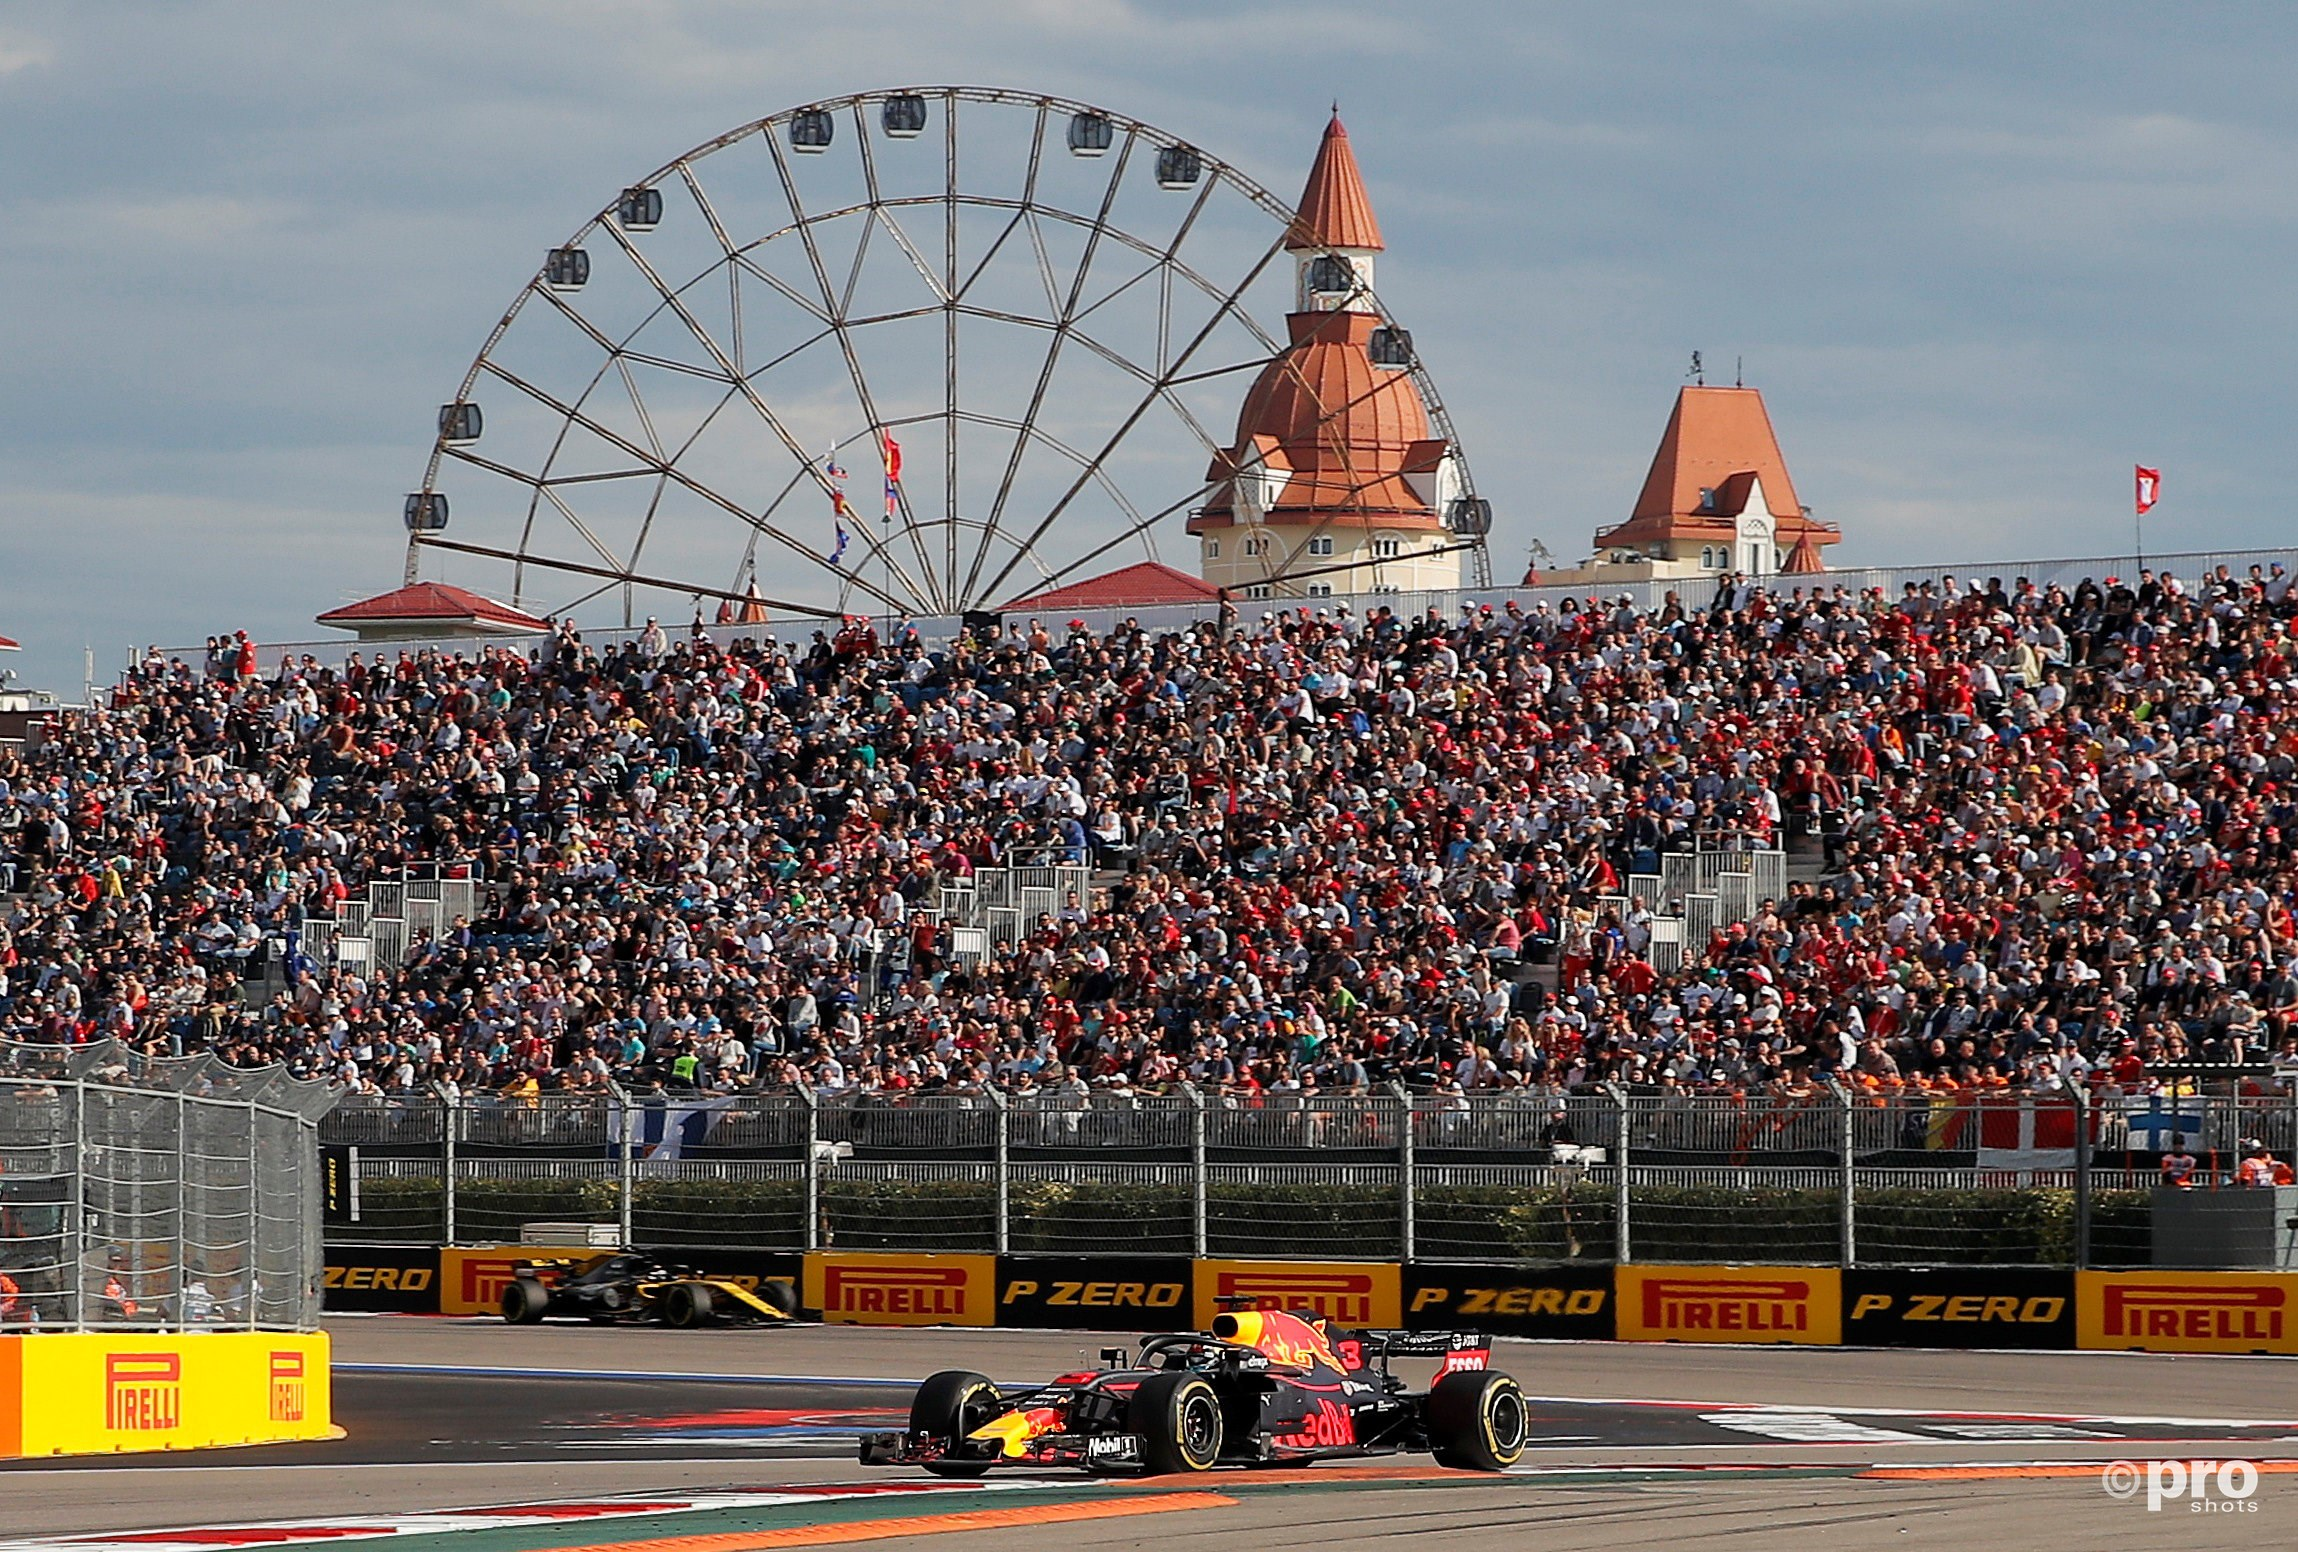 F1 in Sochi. (PRO SHOTS/Action Images)